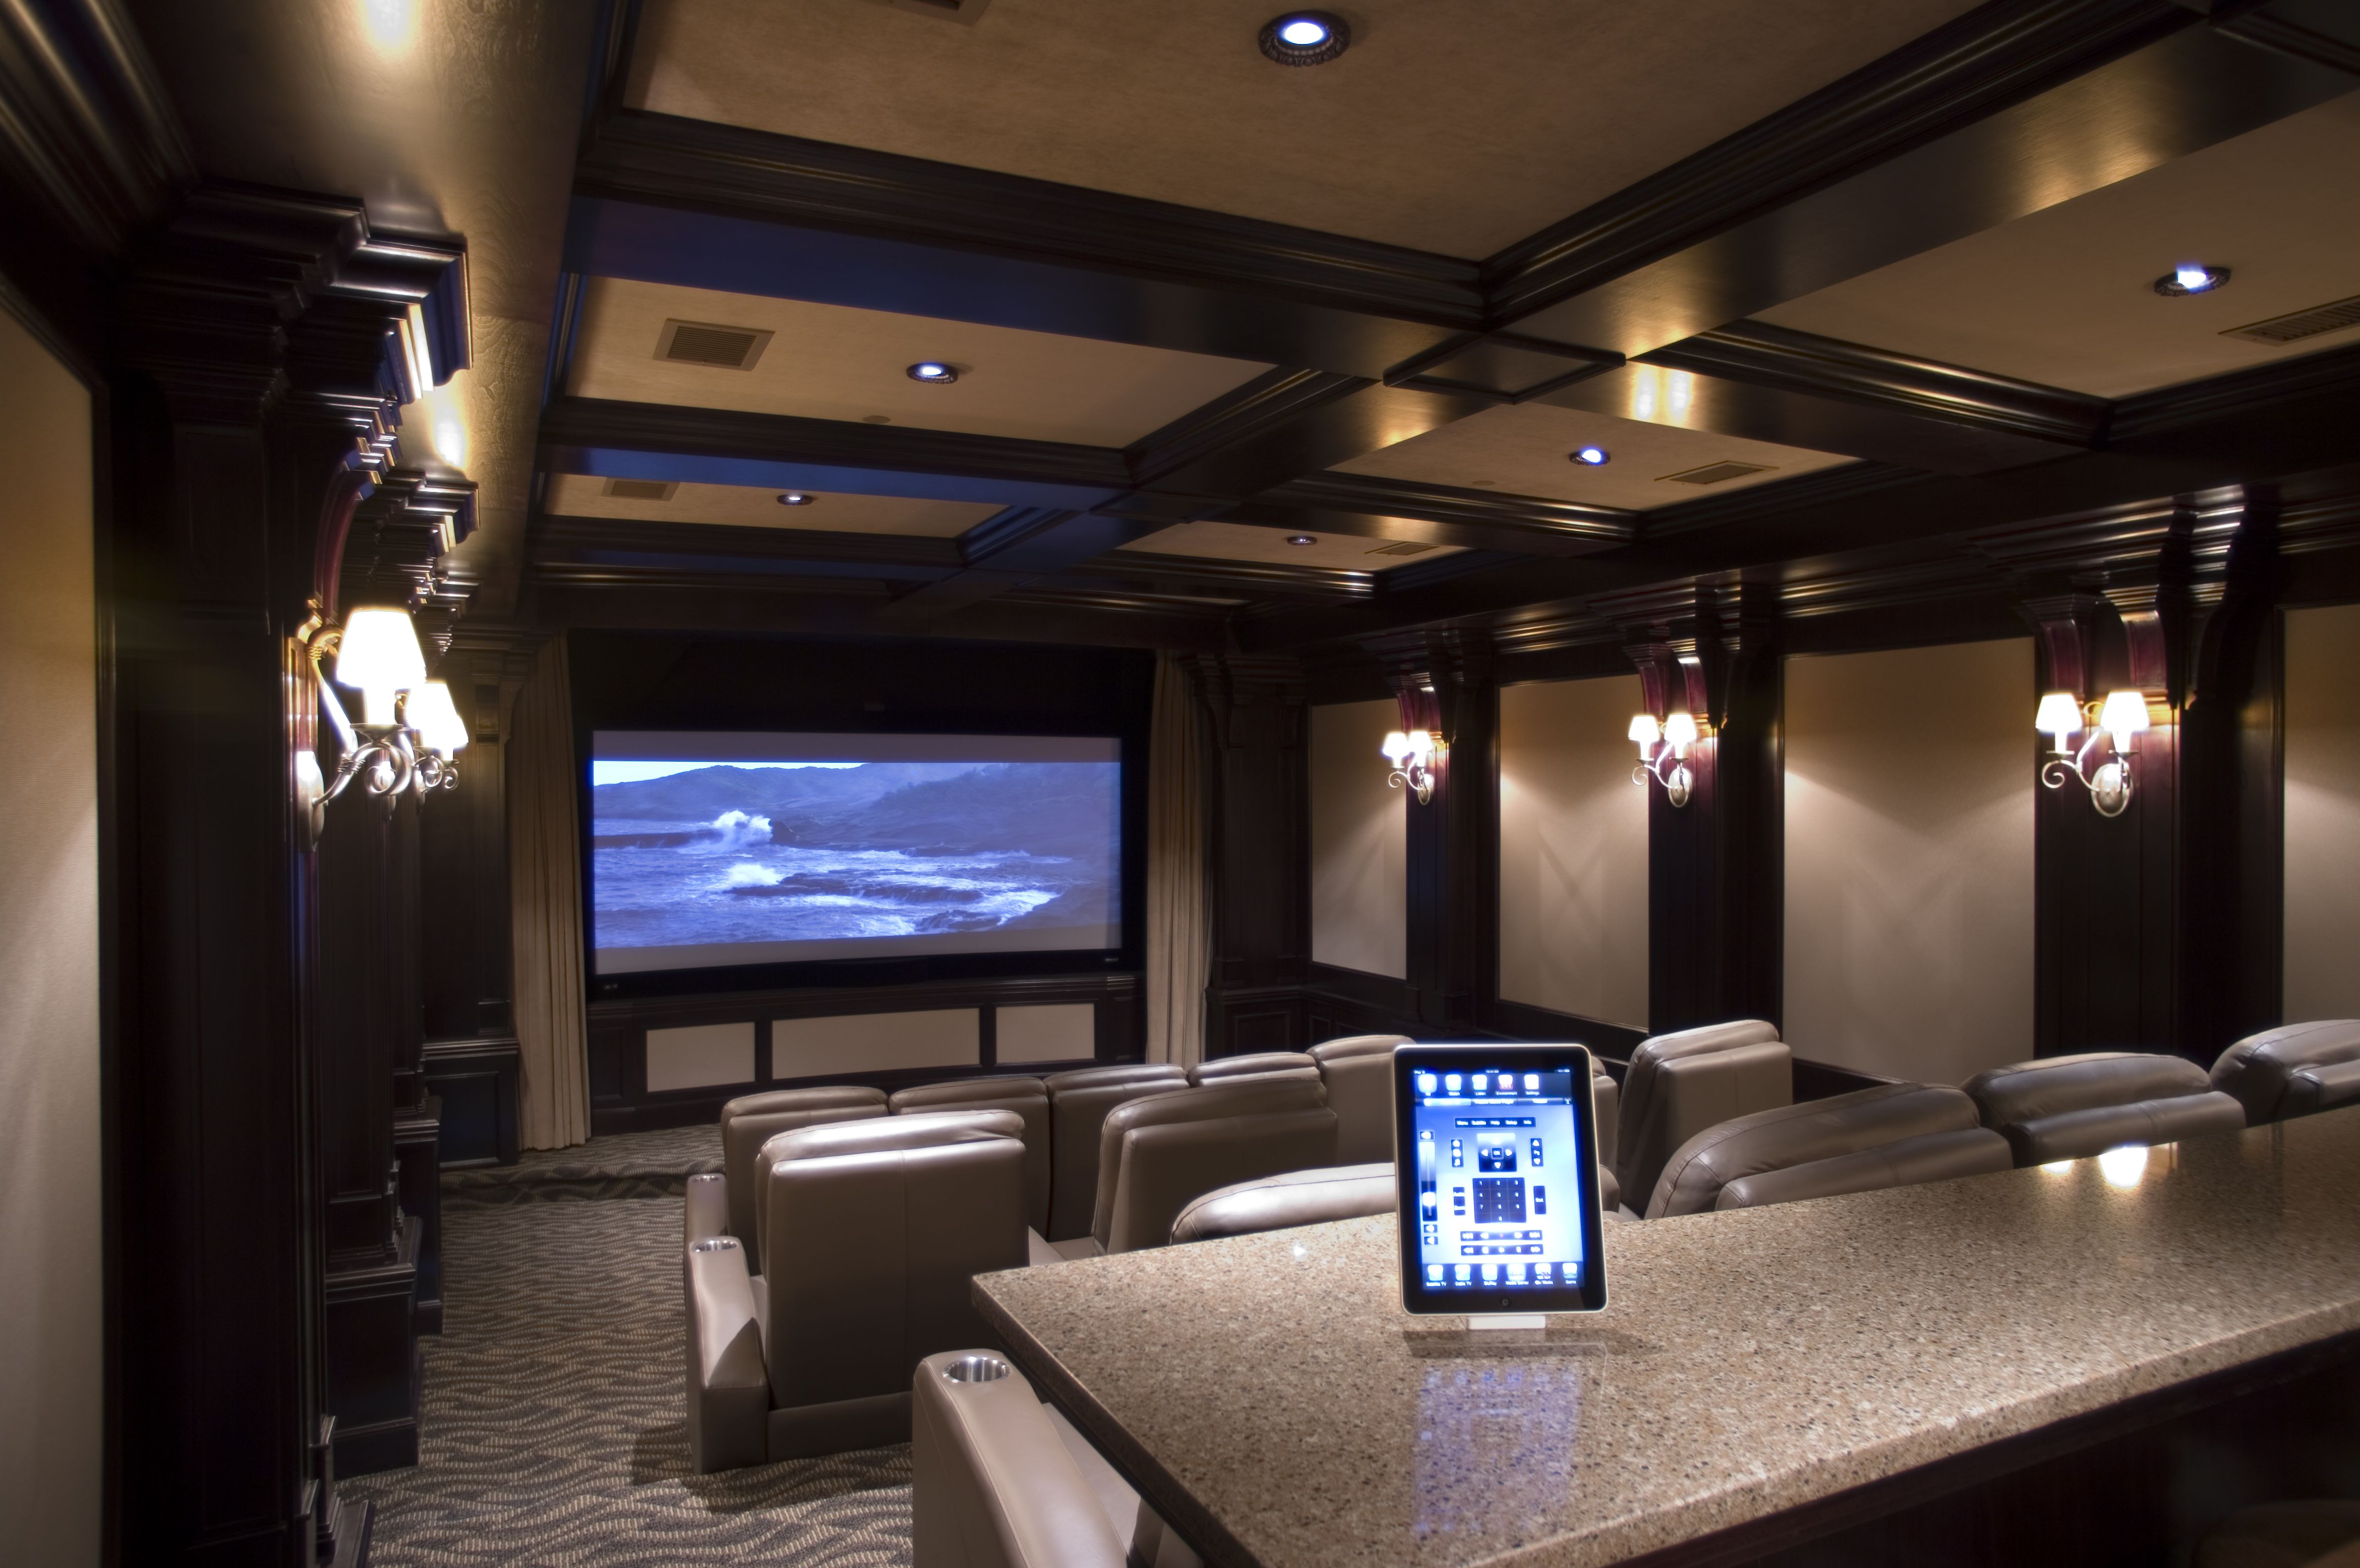 Charmant Luxury Home Movie Theater Rooms Ideas : Enchanting Home Movie Theater Rooms  Design Ideas By Screen With Black Frame Combined With Wall Lamps Also Cream  ...